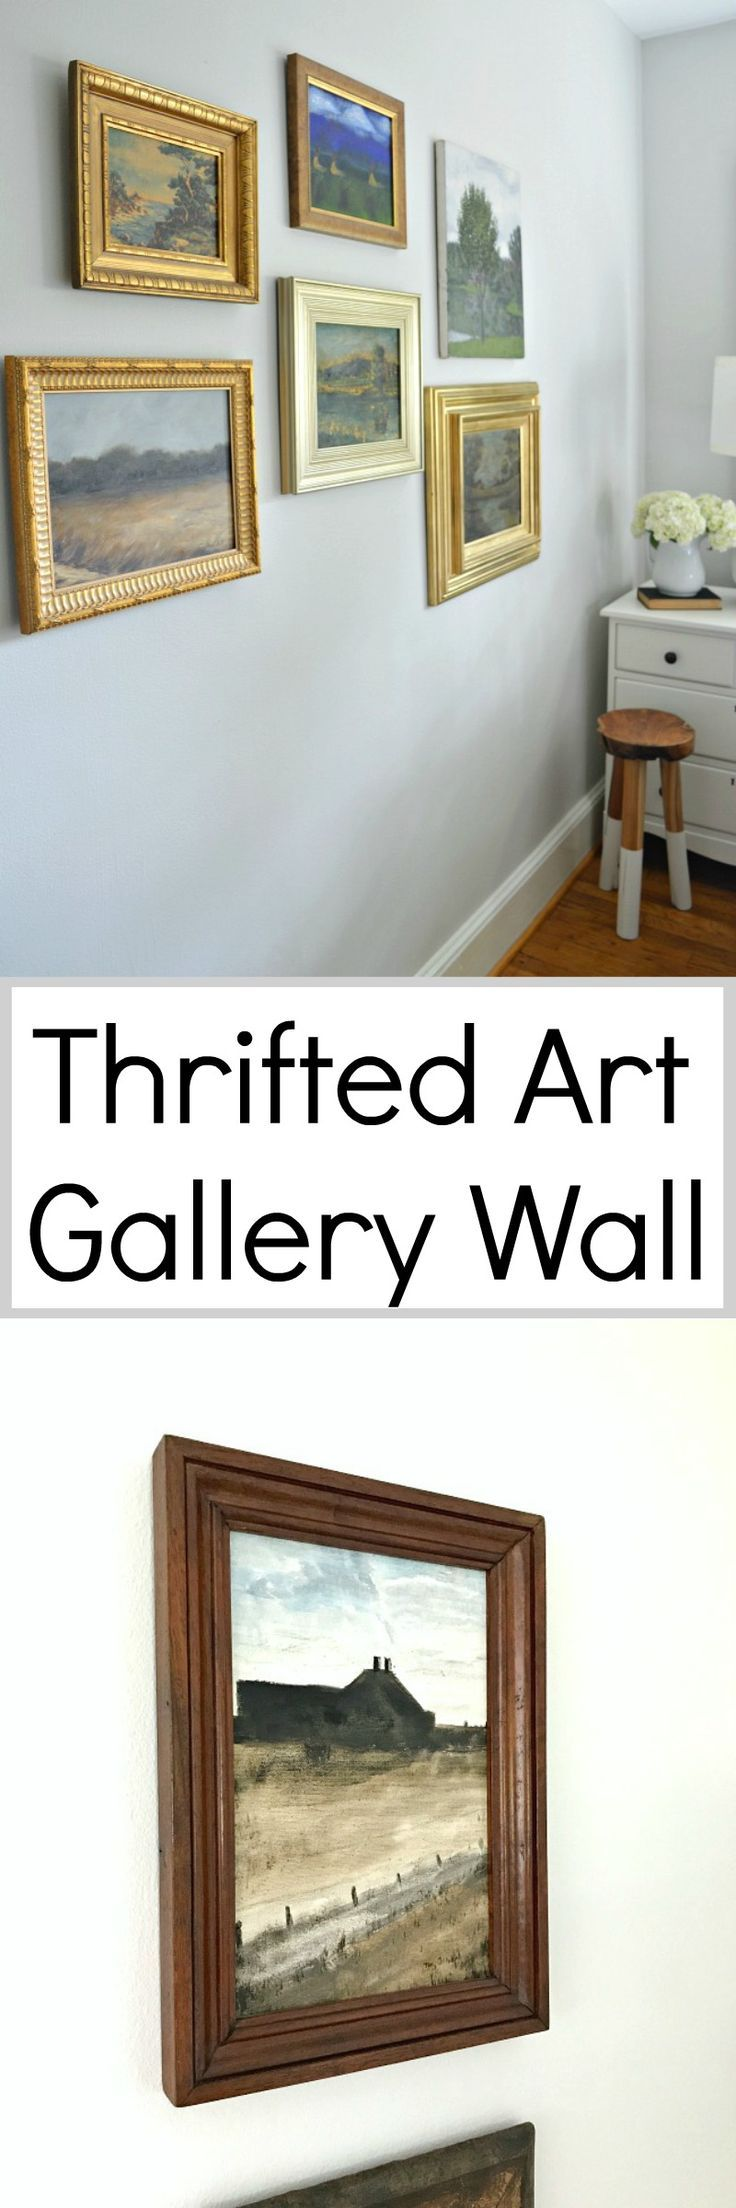 Thrift store art gallery wall blogger home projects we love